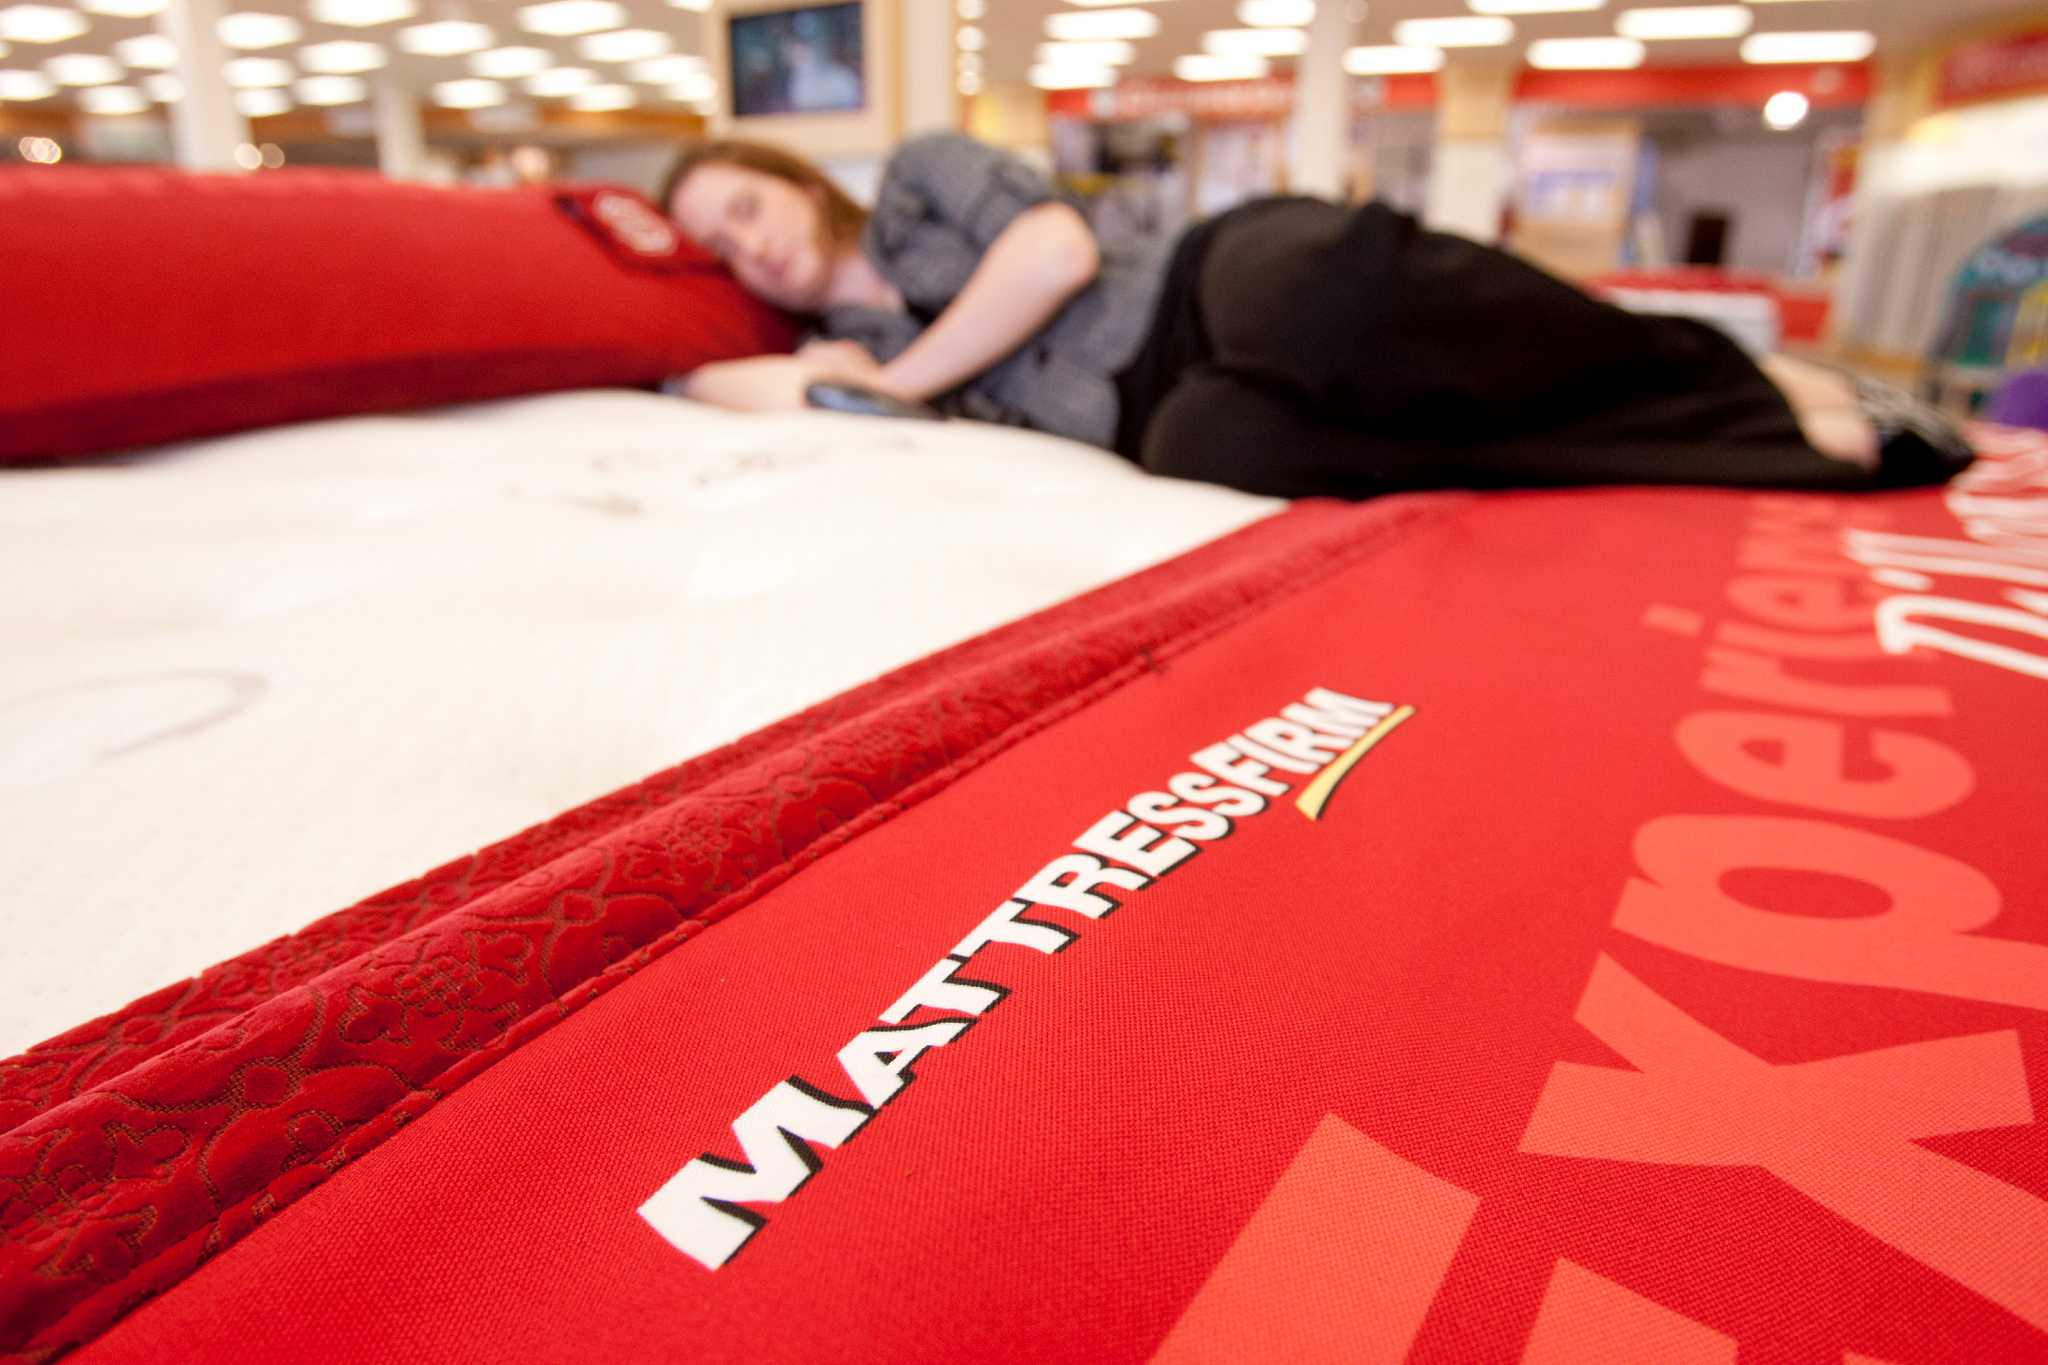 Mattress Firm sues bed-in-a-box competitor for false advertising